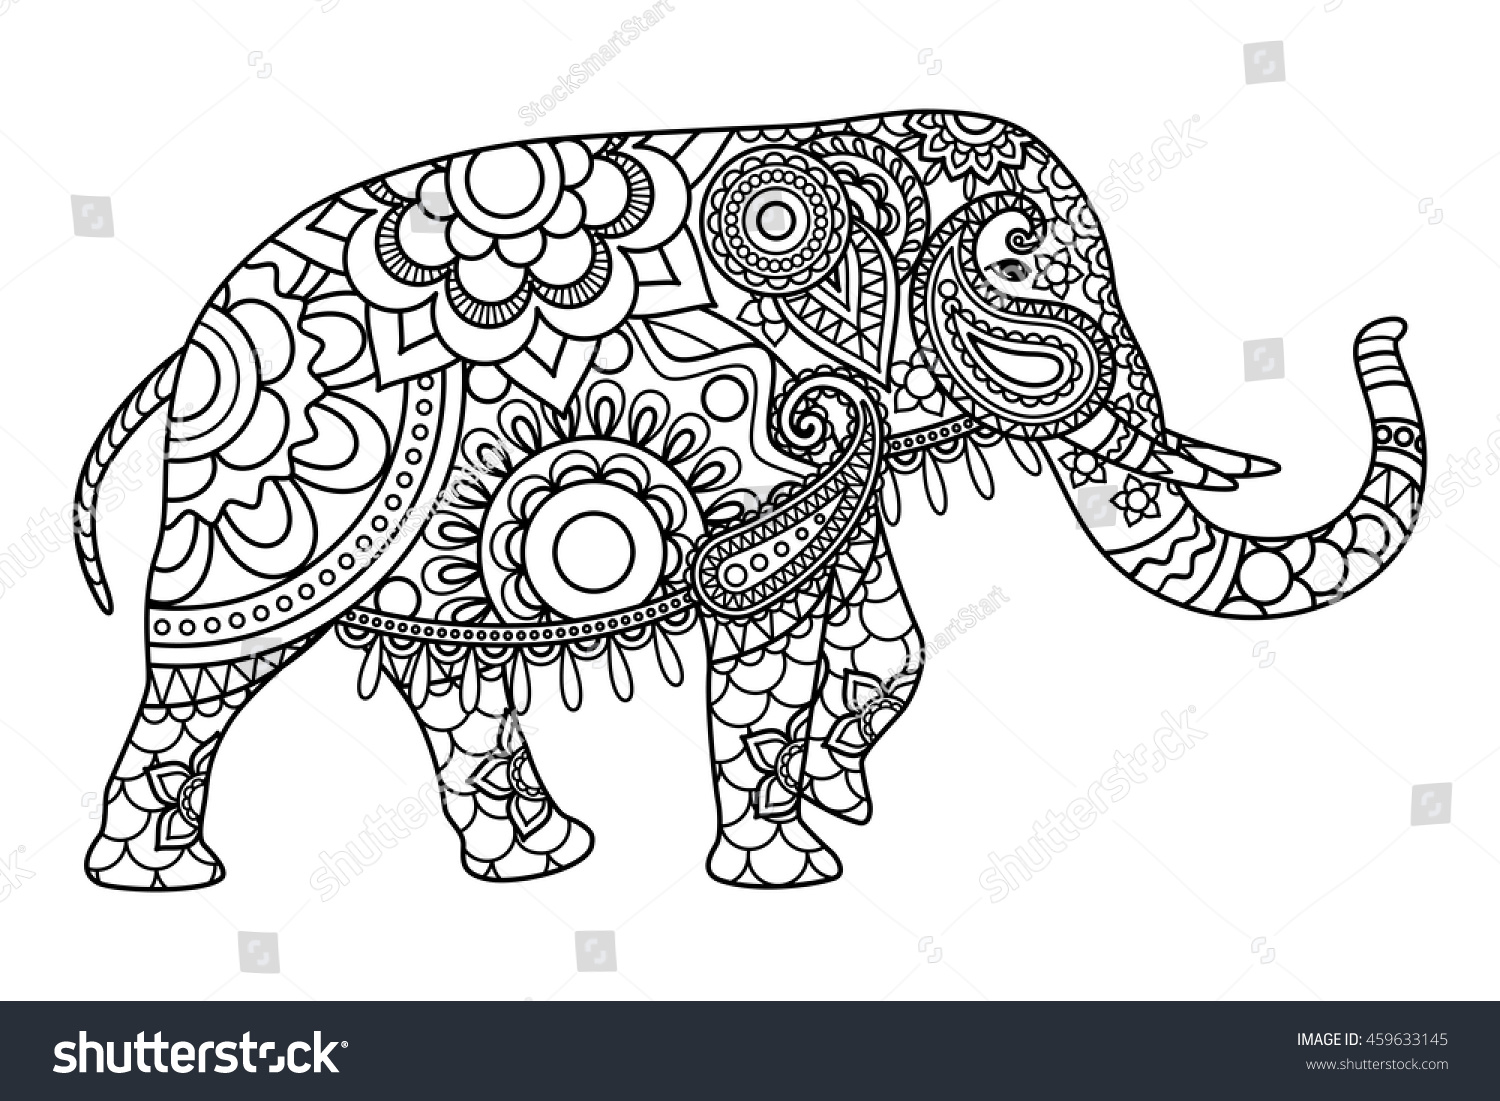 Indian elephant coloring pages template. Vector   Royalty Free ...